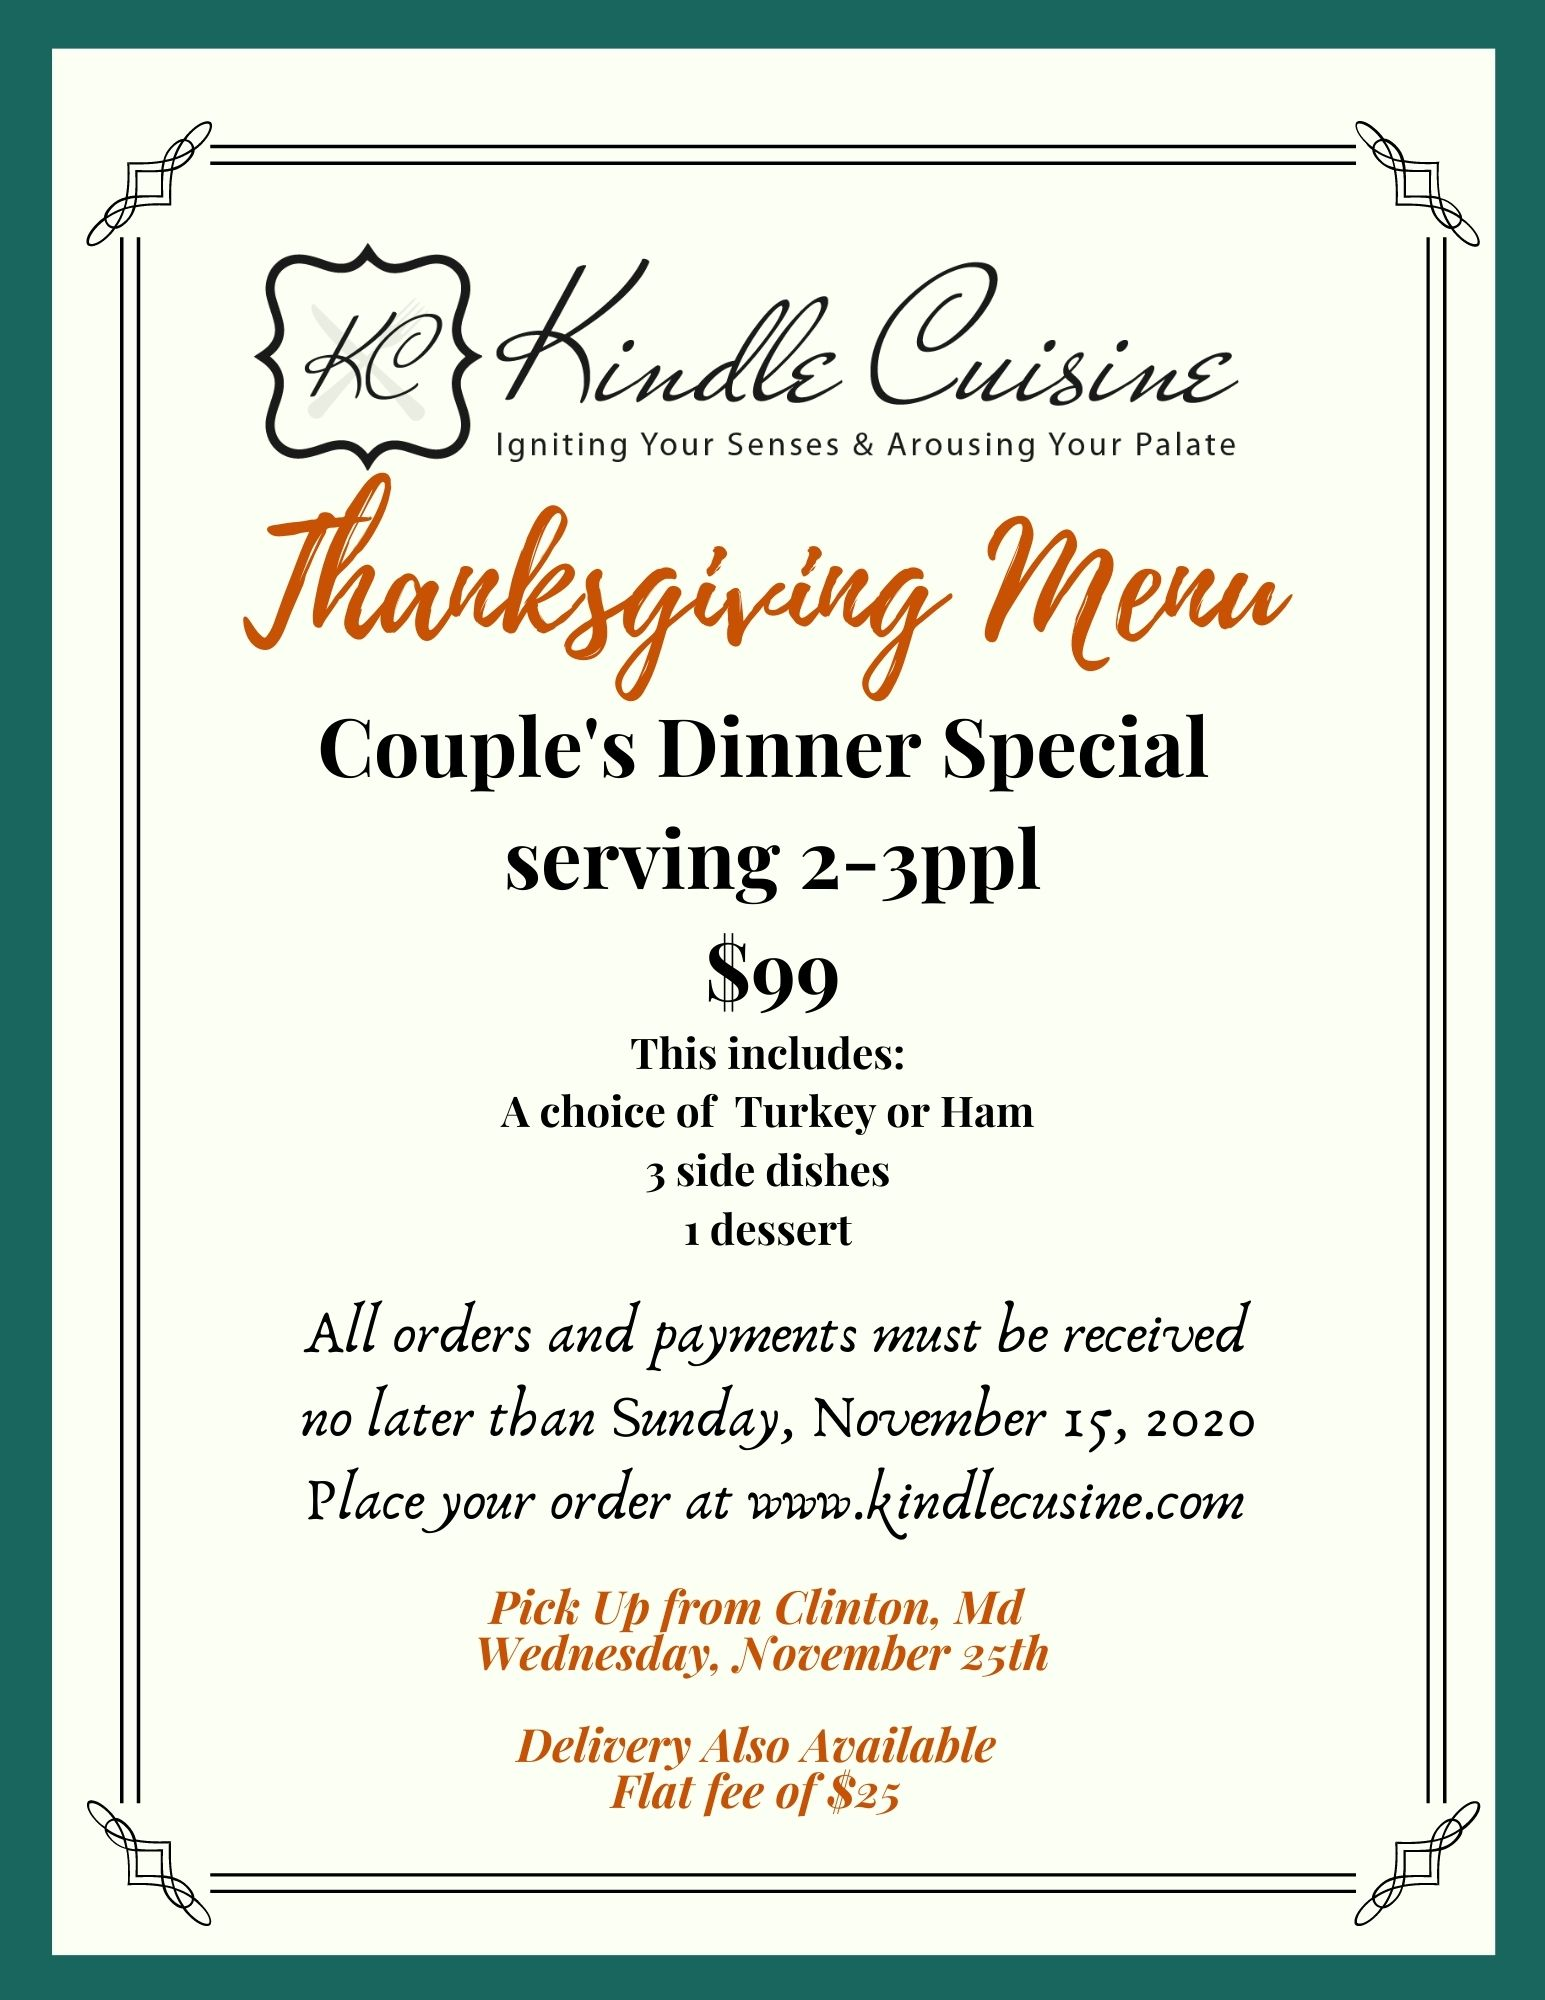 Couple's Dinner Special